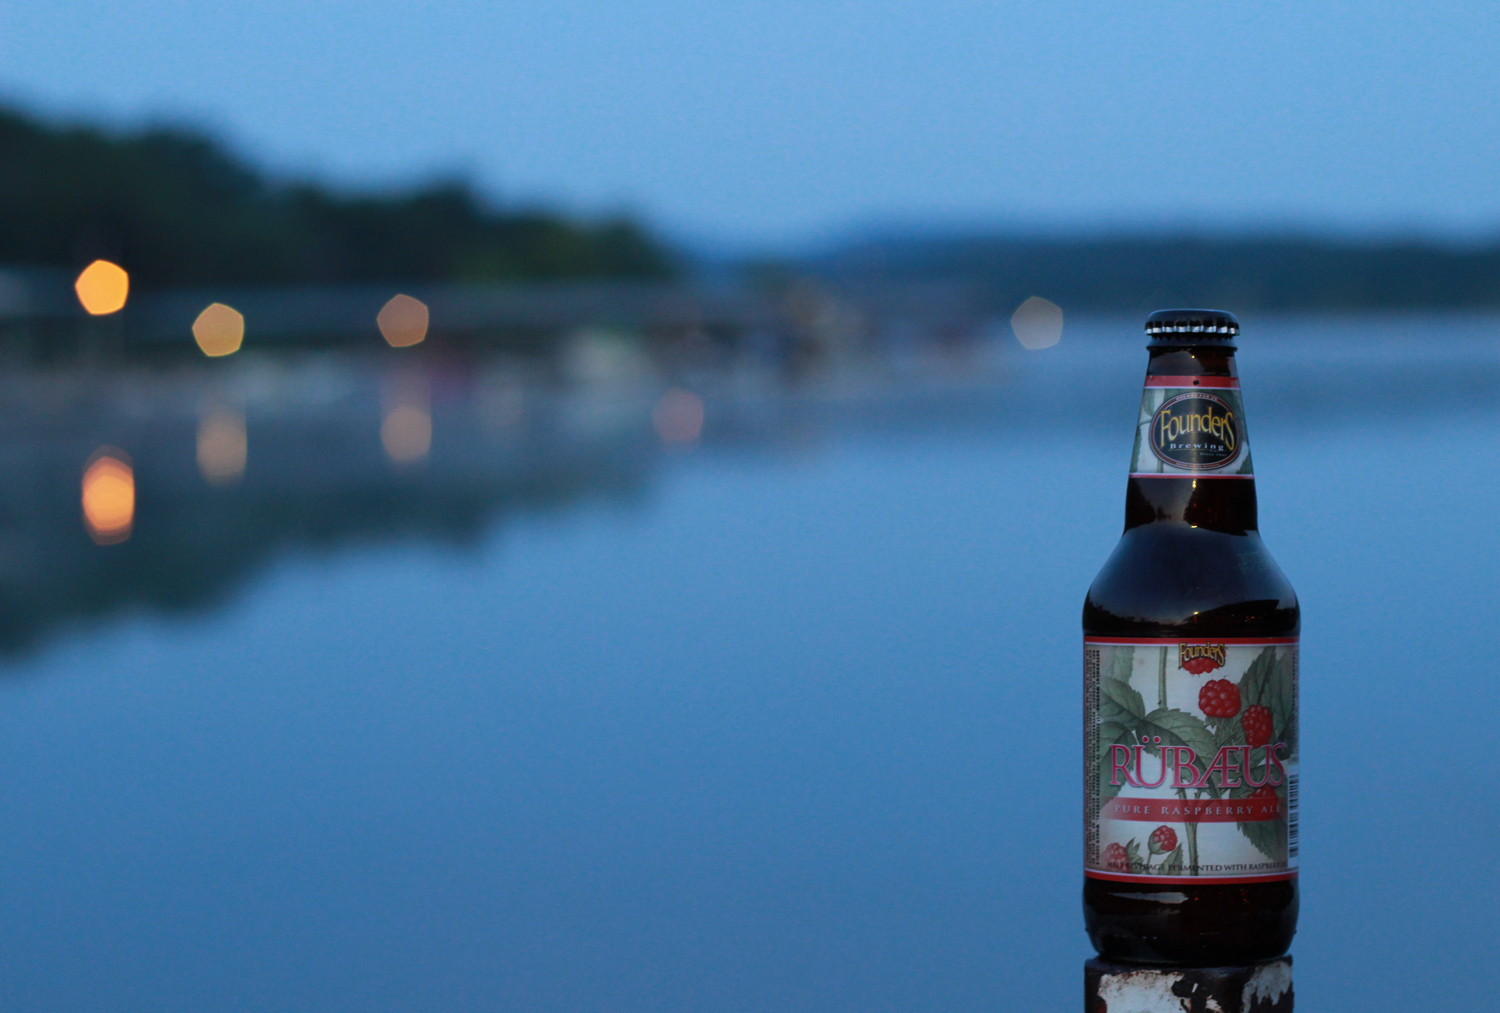 Rubaeus raspberry beer for an evening on the lake.